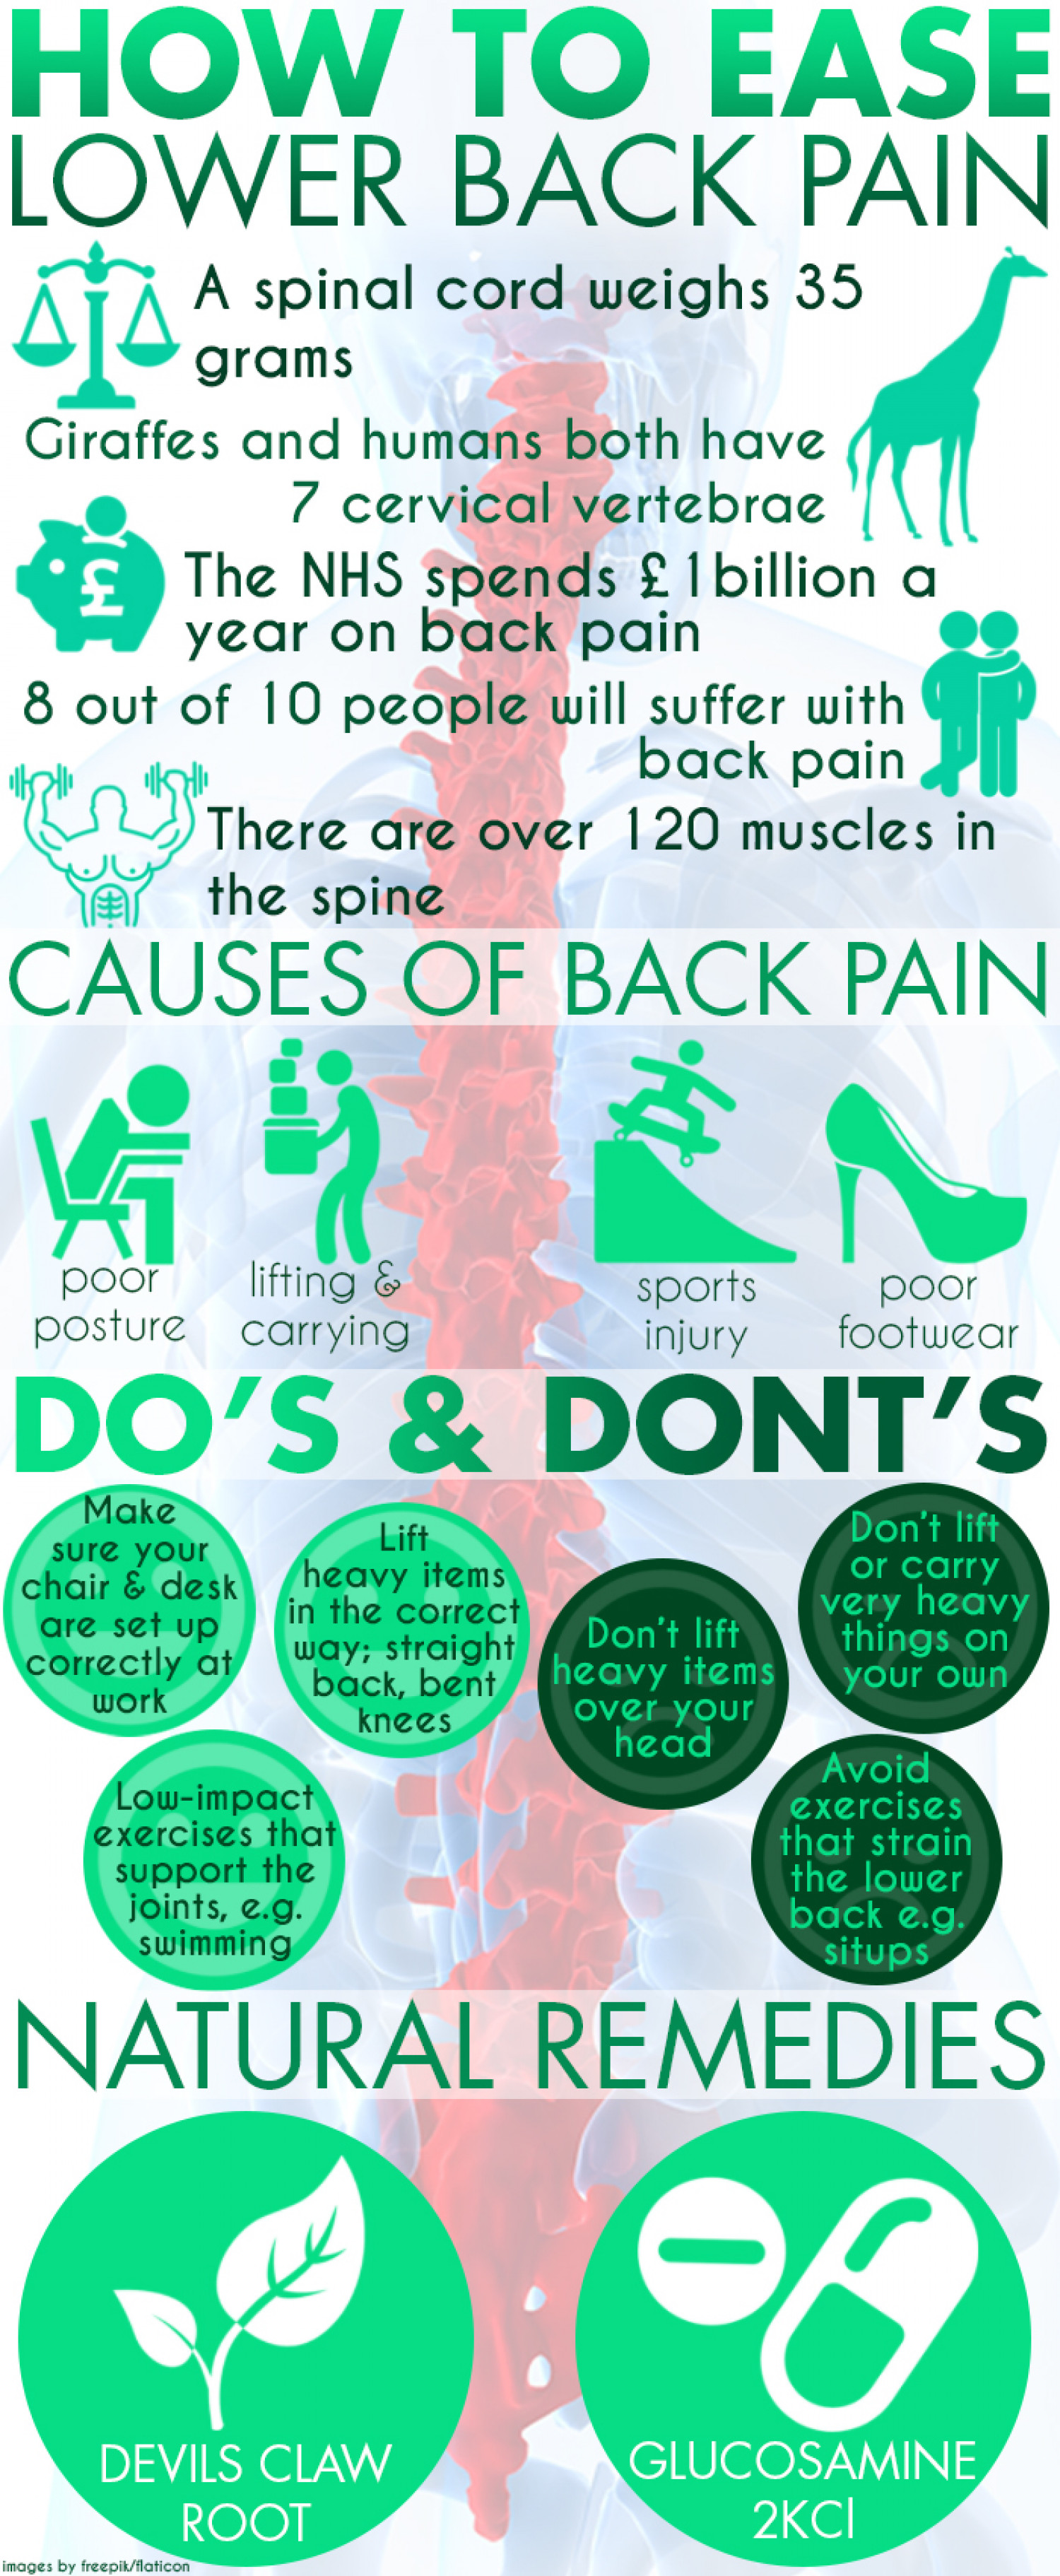 How To Ease Lower Back Pain Infographic